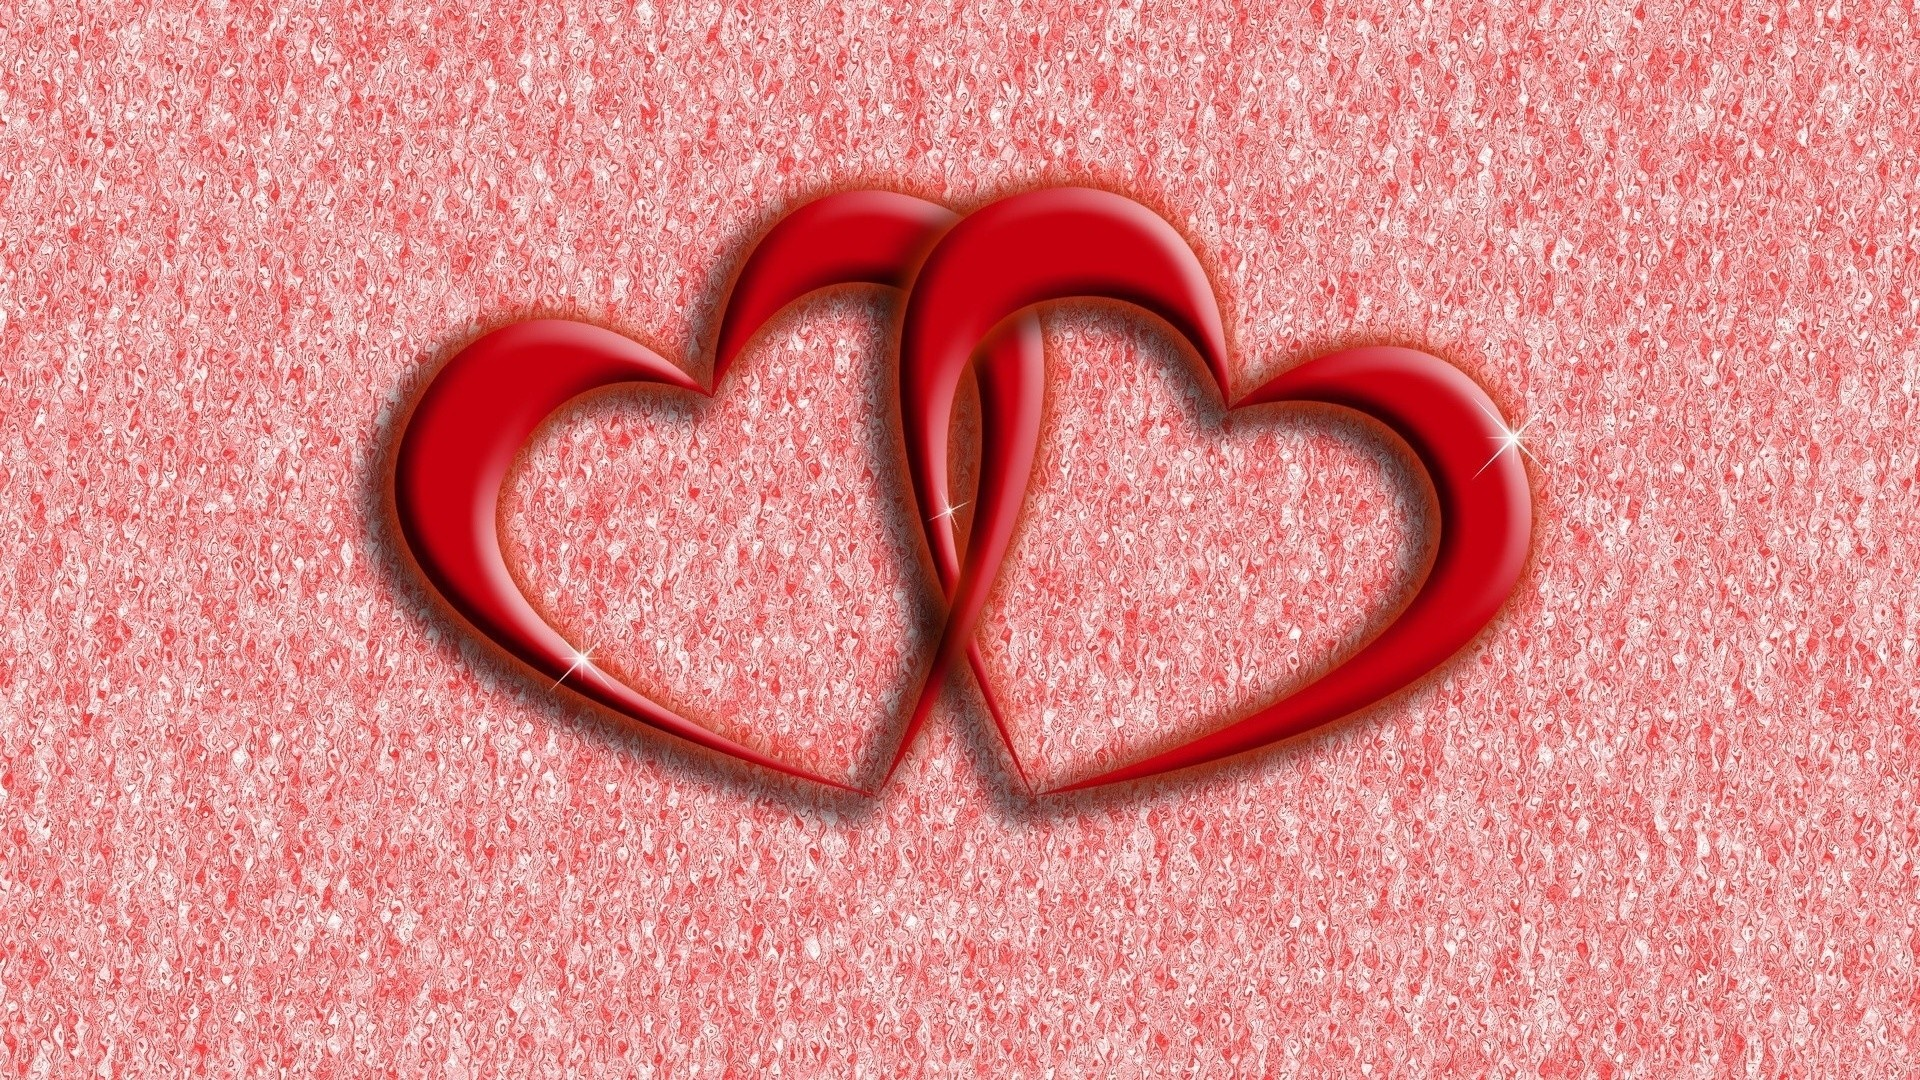 1920x1080 download cool hd two red hearts wallpaper for desktop